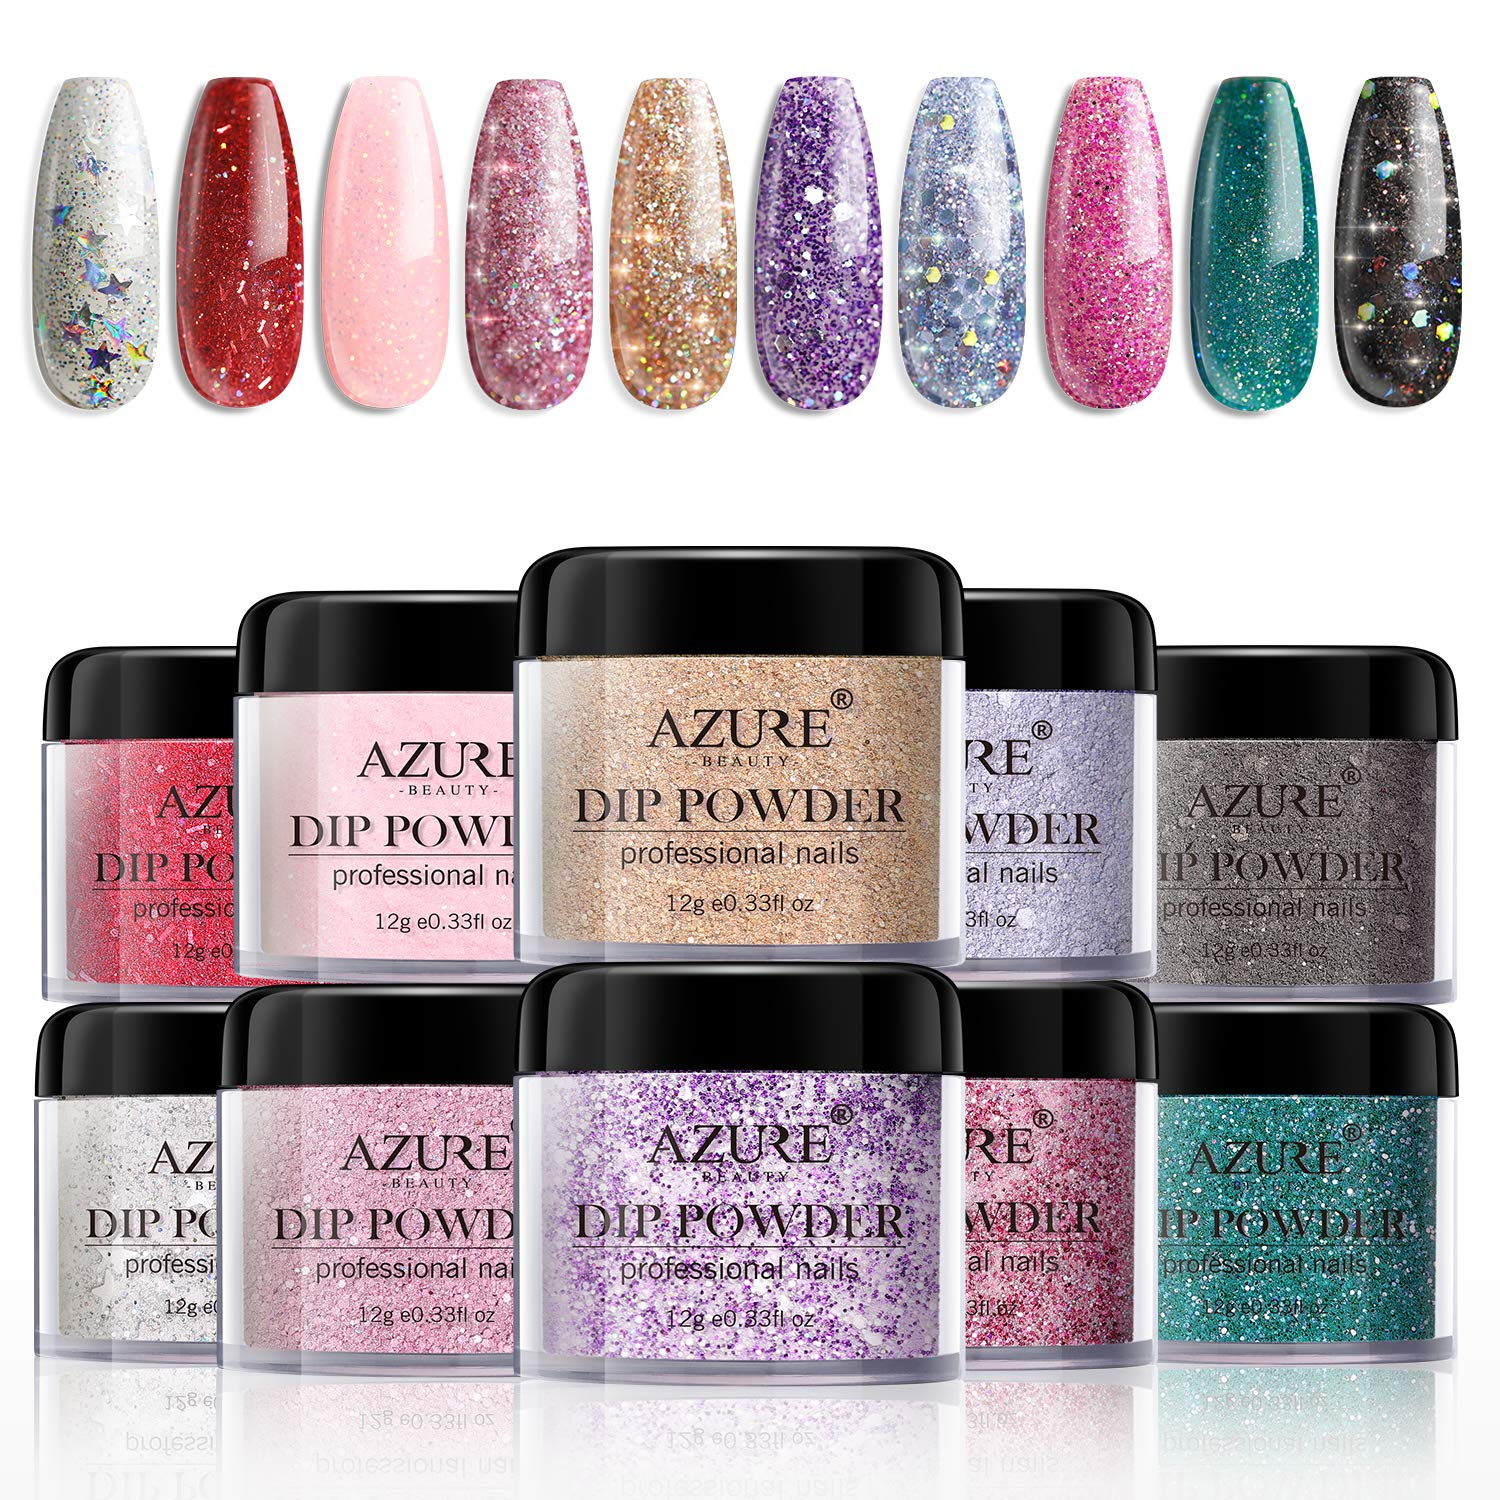 Dipping Nail Powder Colors Set - 10 Glitter Dip Powders Colors Nails Set for Party Wedding Anniversary with Gift Box No UV/LED Nail Lamp Needed for French Nail Manicure Nail Art